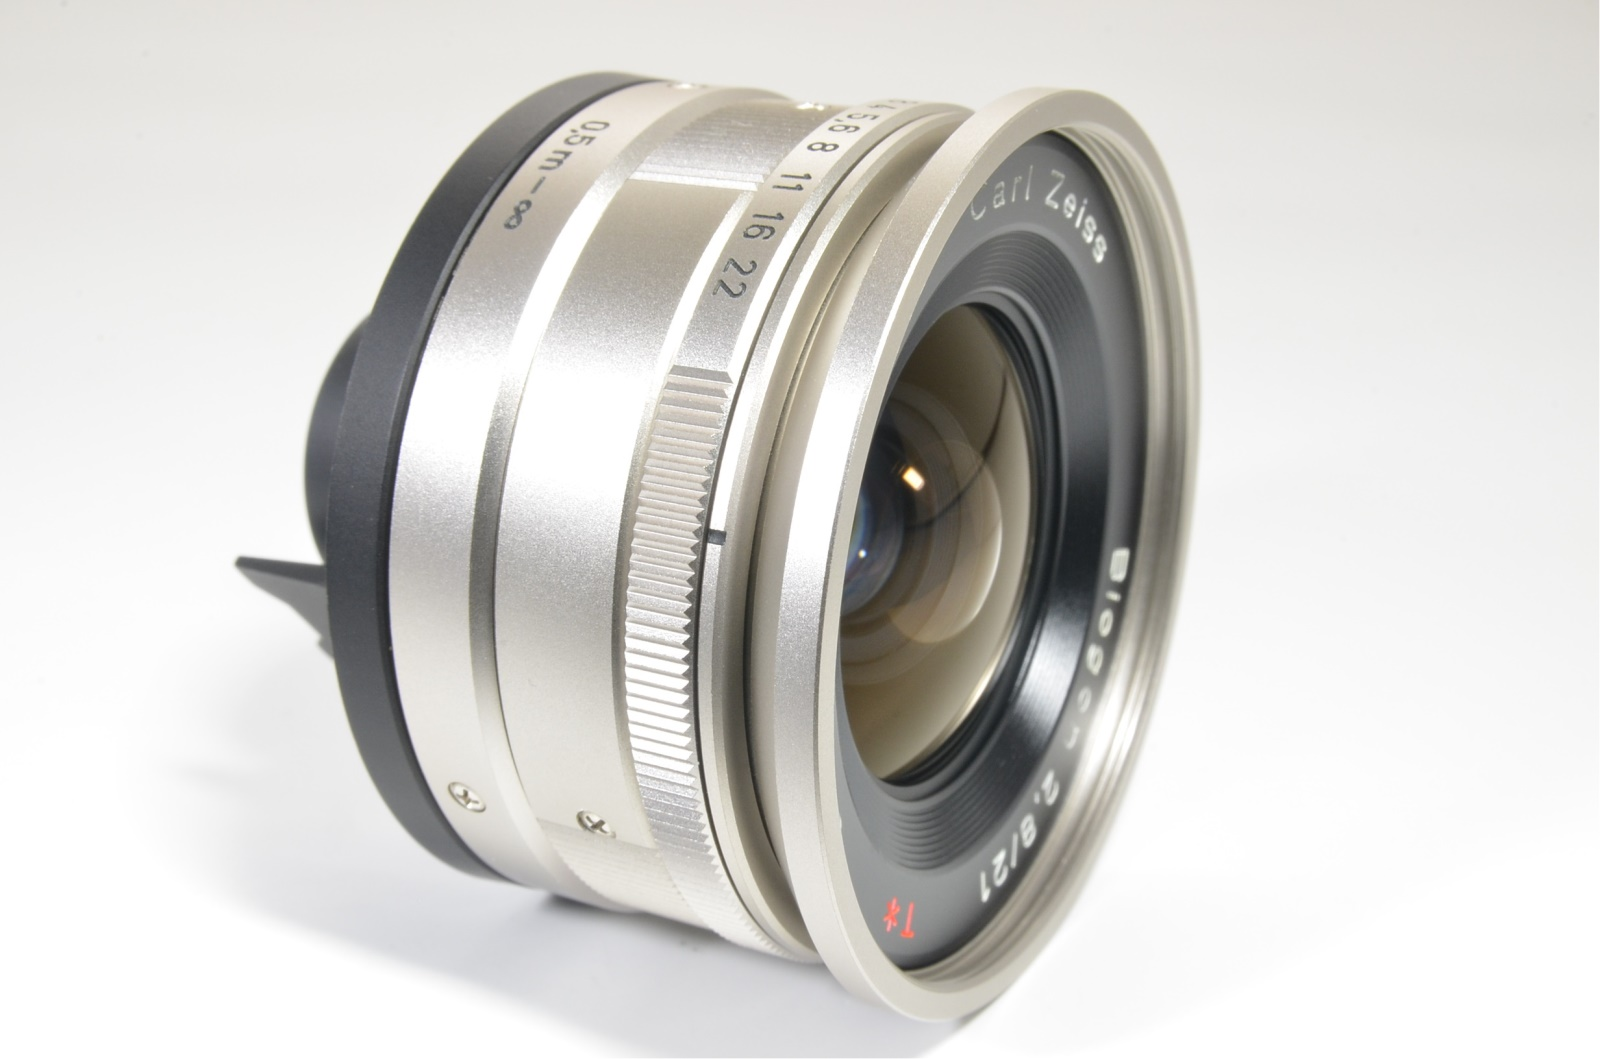 contax carl zeiss t* biogon 21mm f2.8 lens w/ view finder for g2 japan